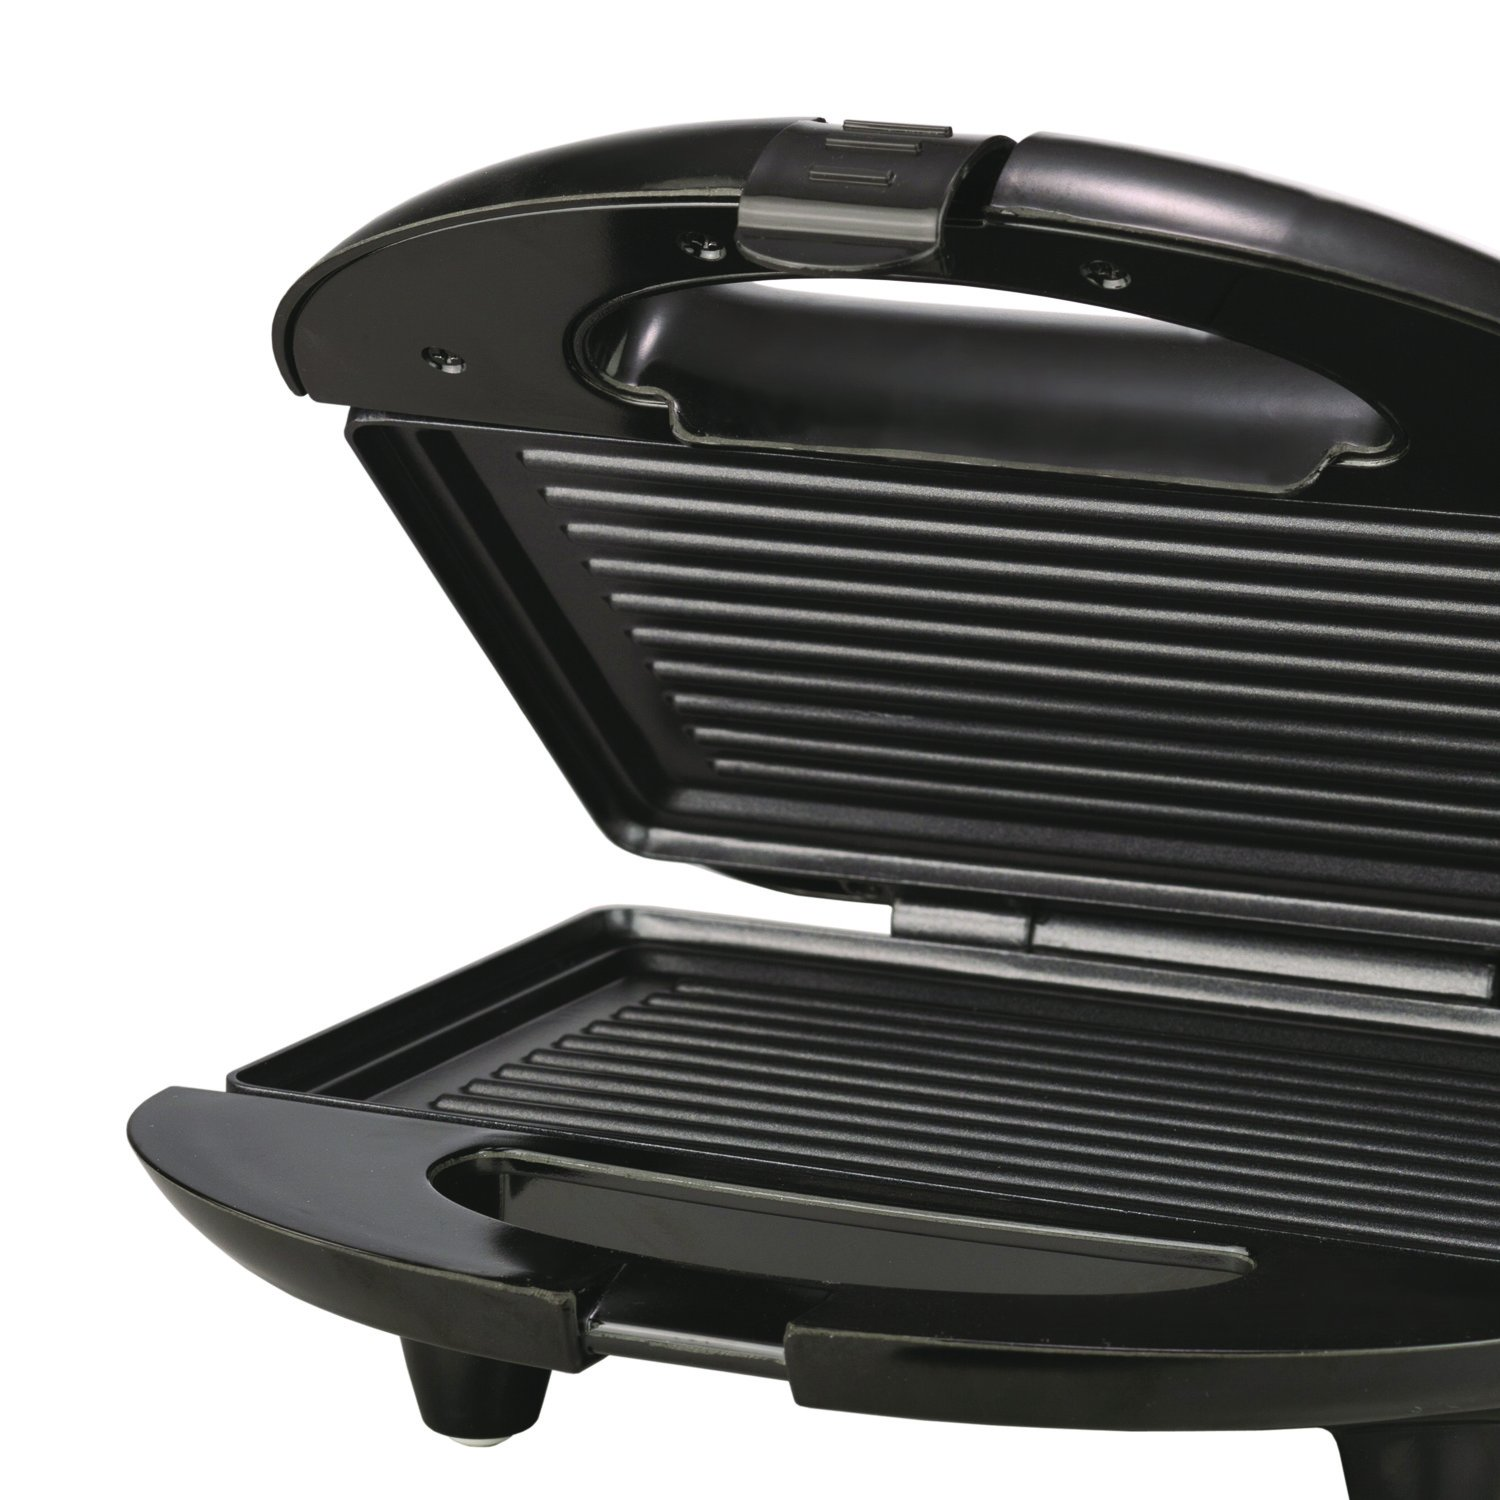 Brentwood Appliances TS-246 Independiente 650W Negro plancha ...